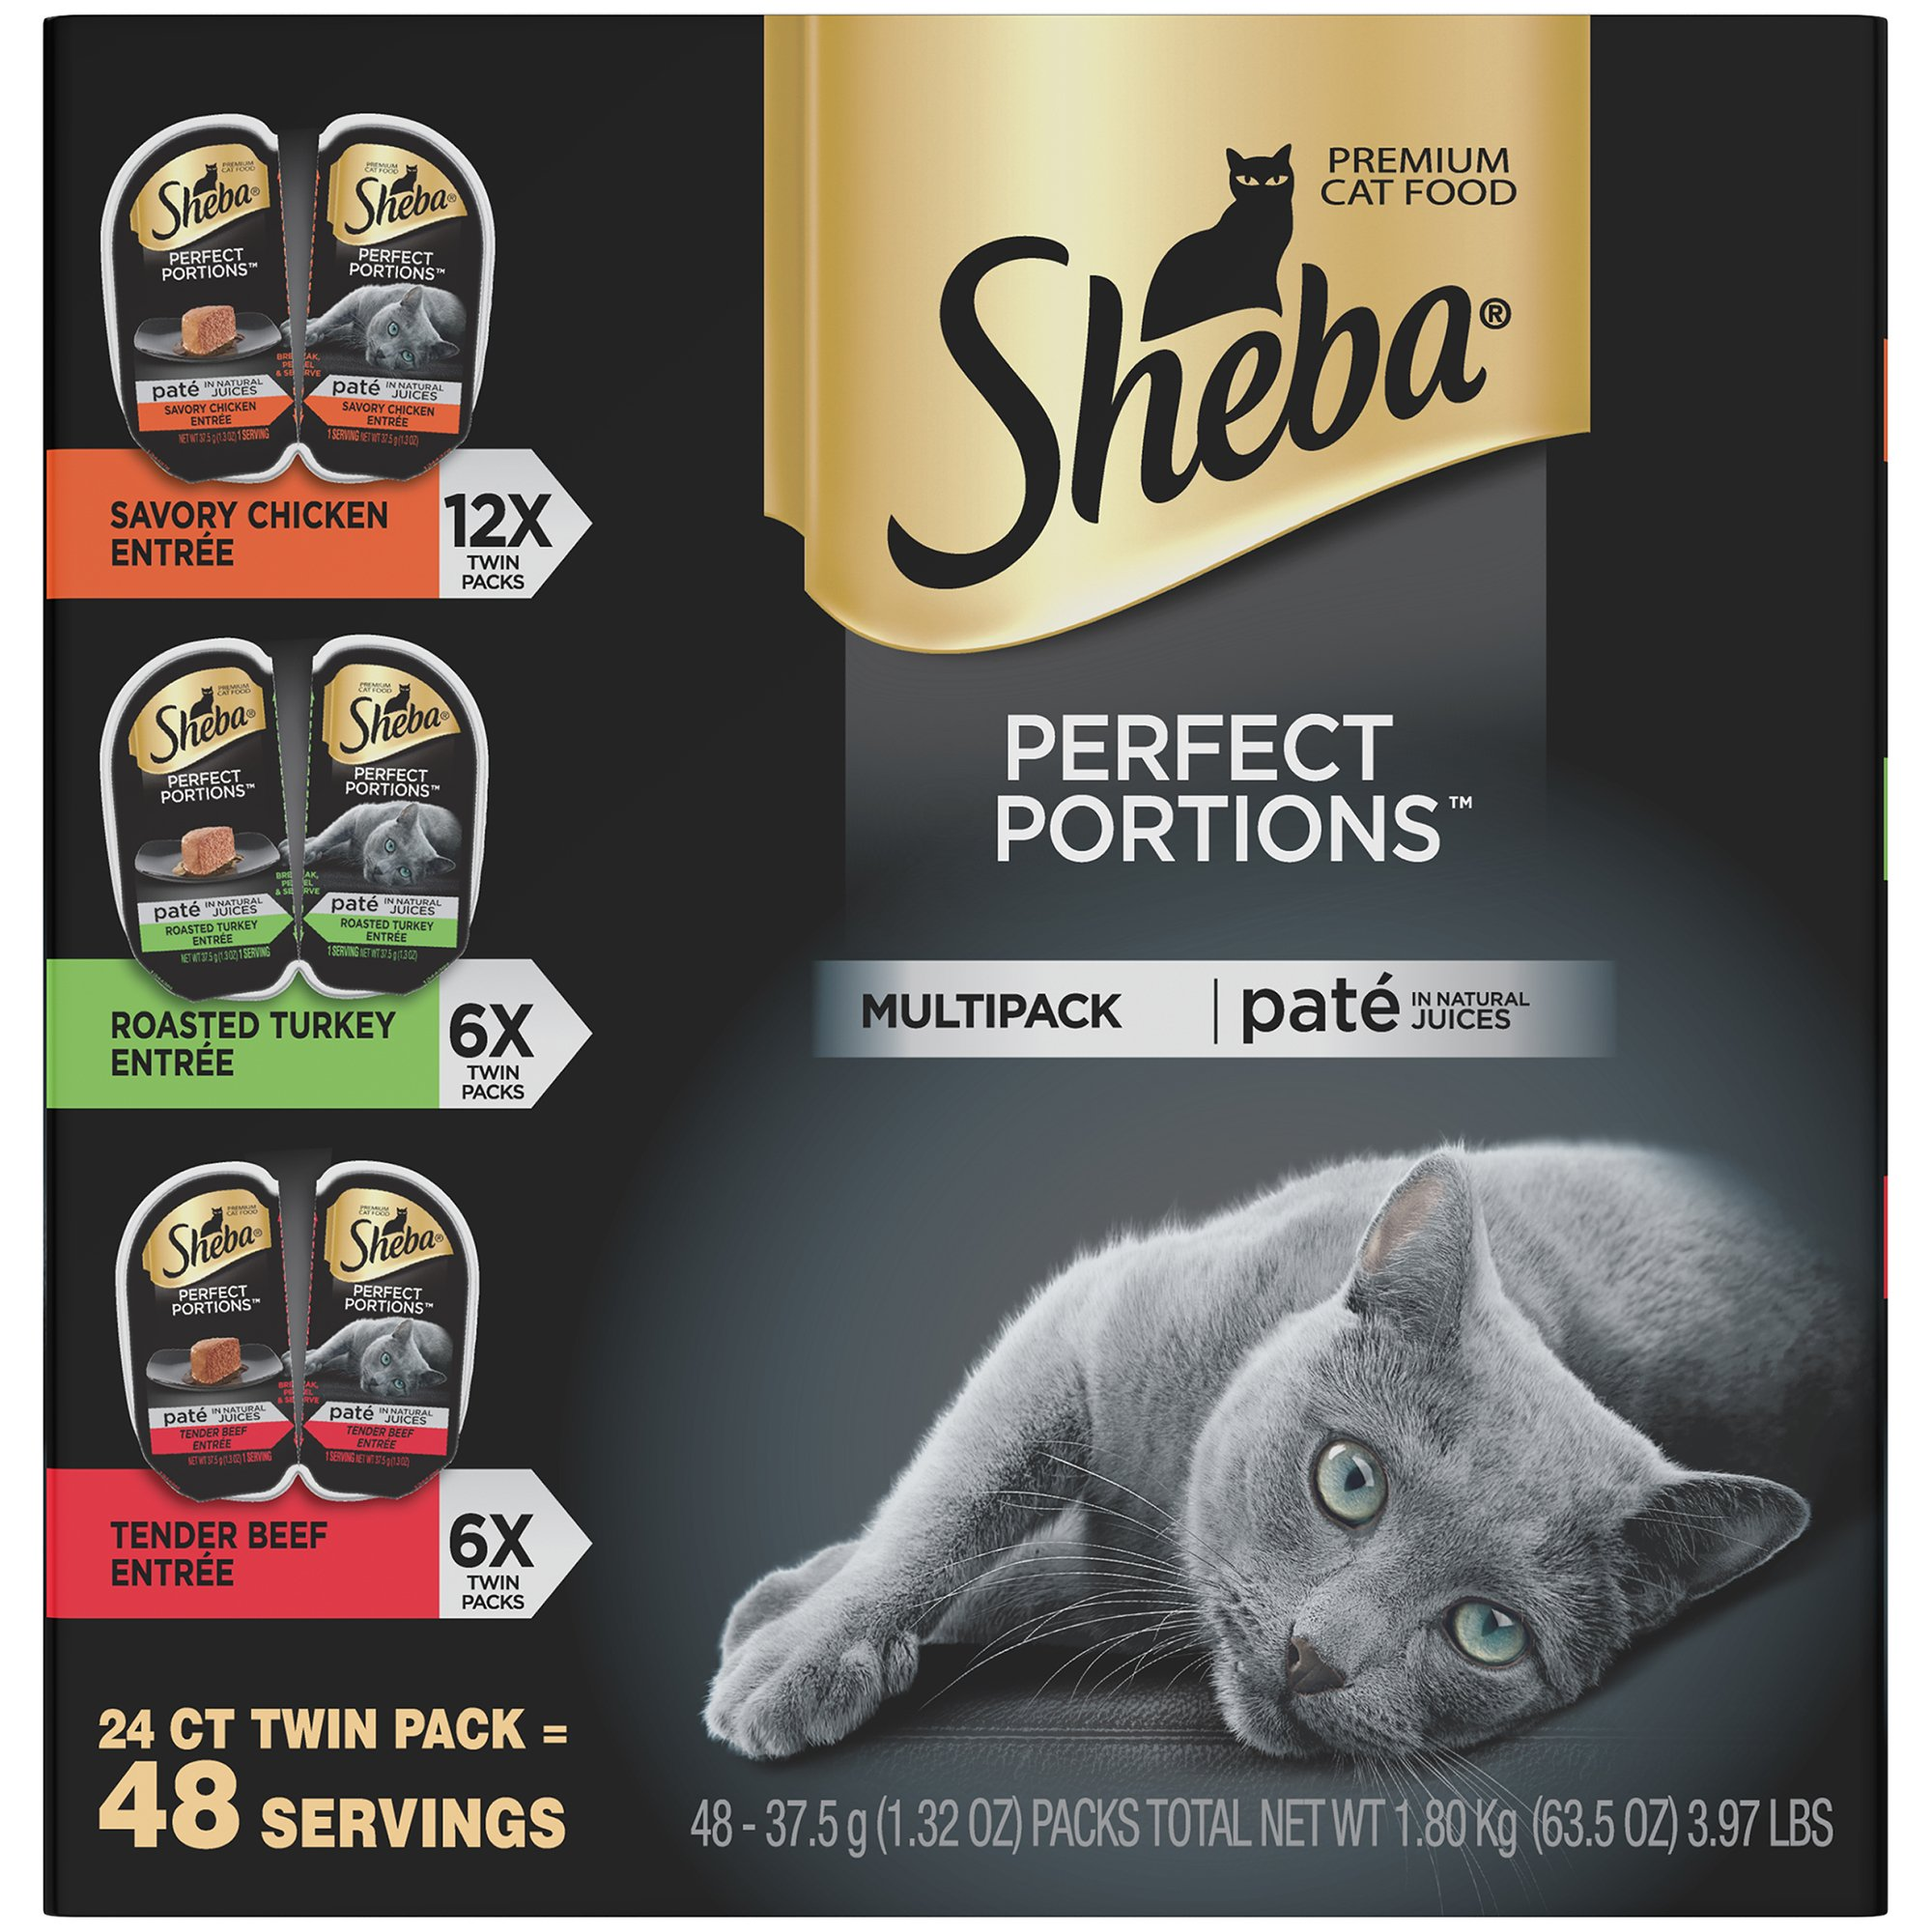 SHEBA PERFECT PORTIONS Soft Wet Cat Food Paté in Natural Juices Savory Chicken, Roasted Turkey, & Tender Beef Entrées Variety Pack, (24) 2.6 oz. Easy Peel Twin-Pack Trays by Sheba Wet Food